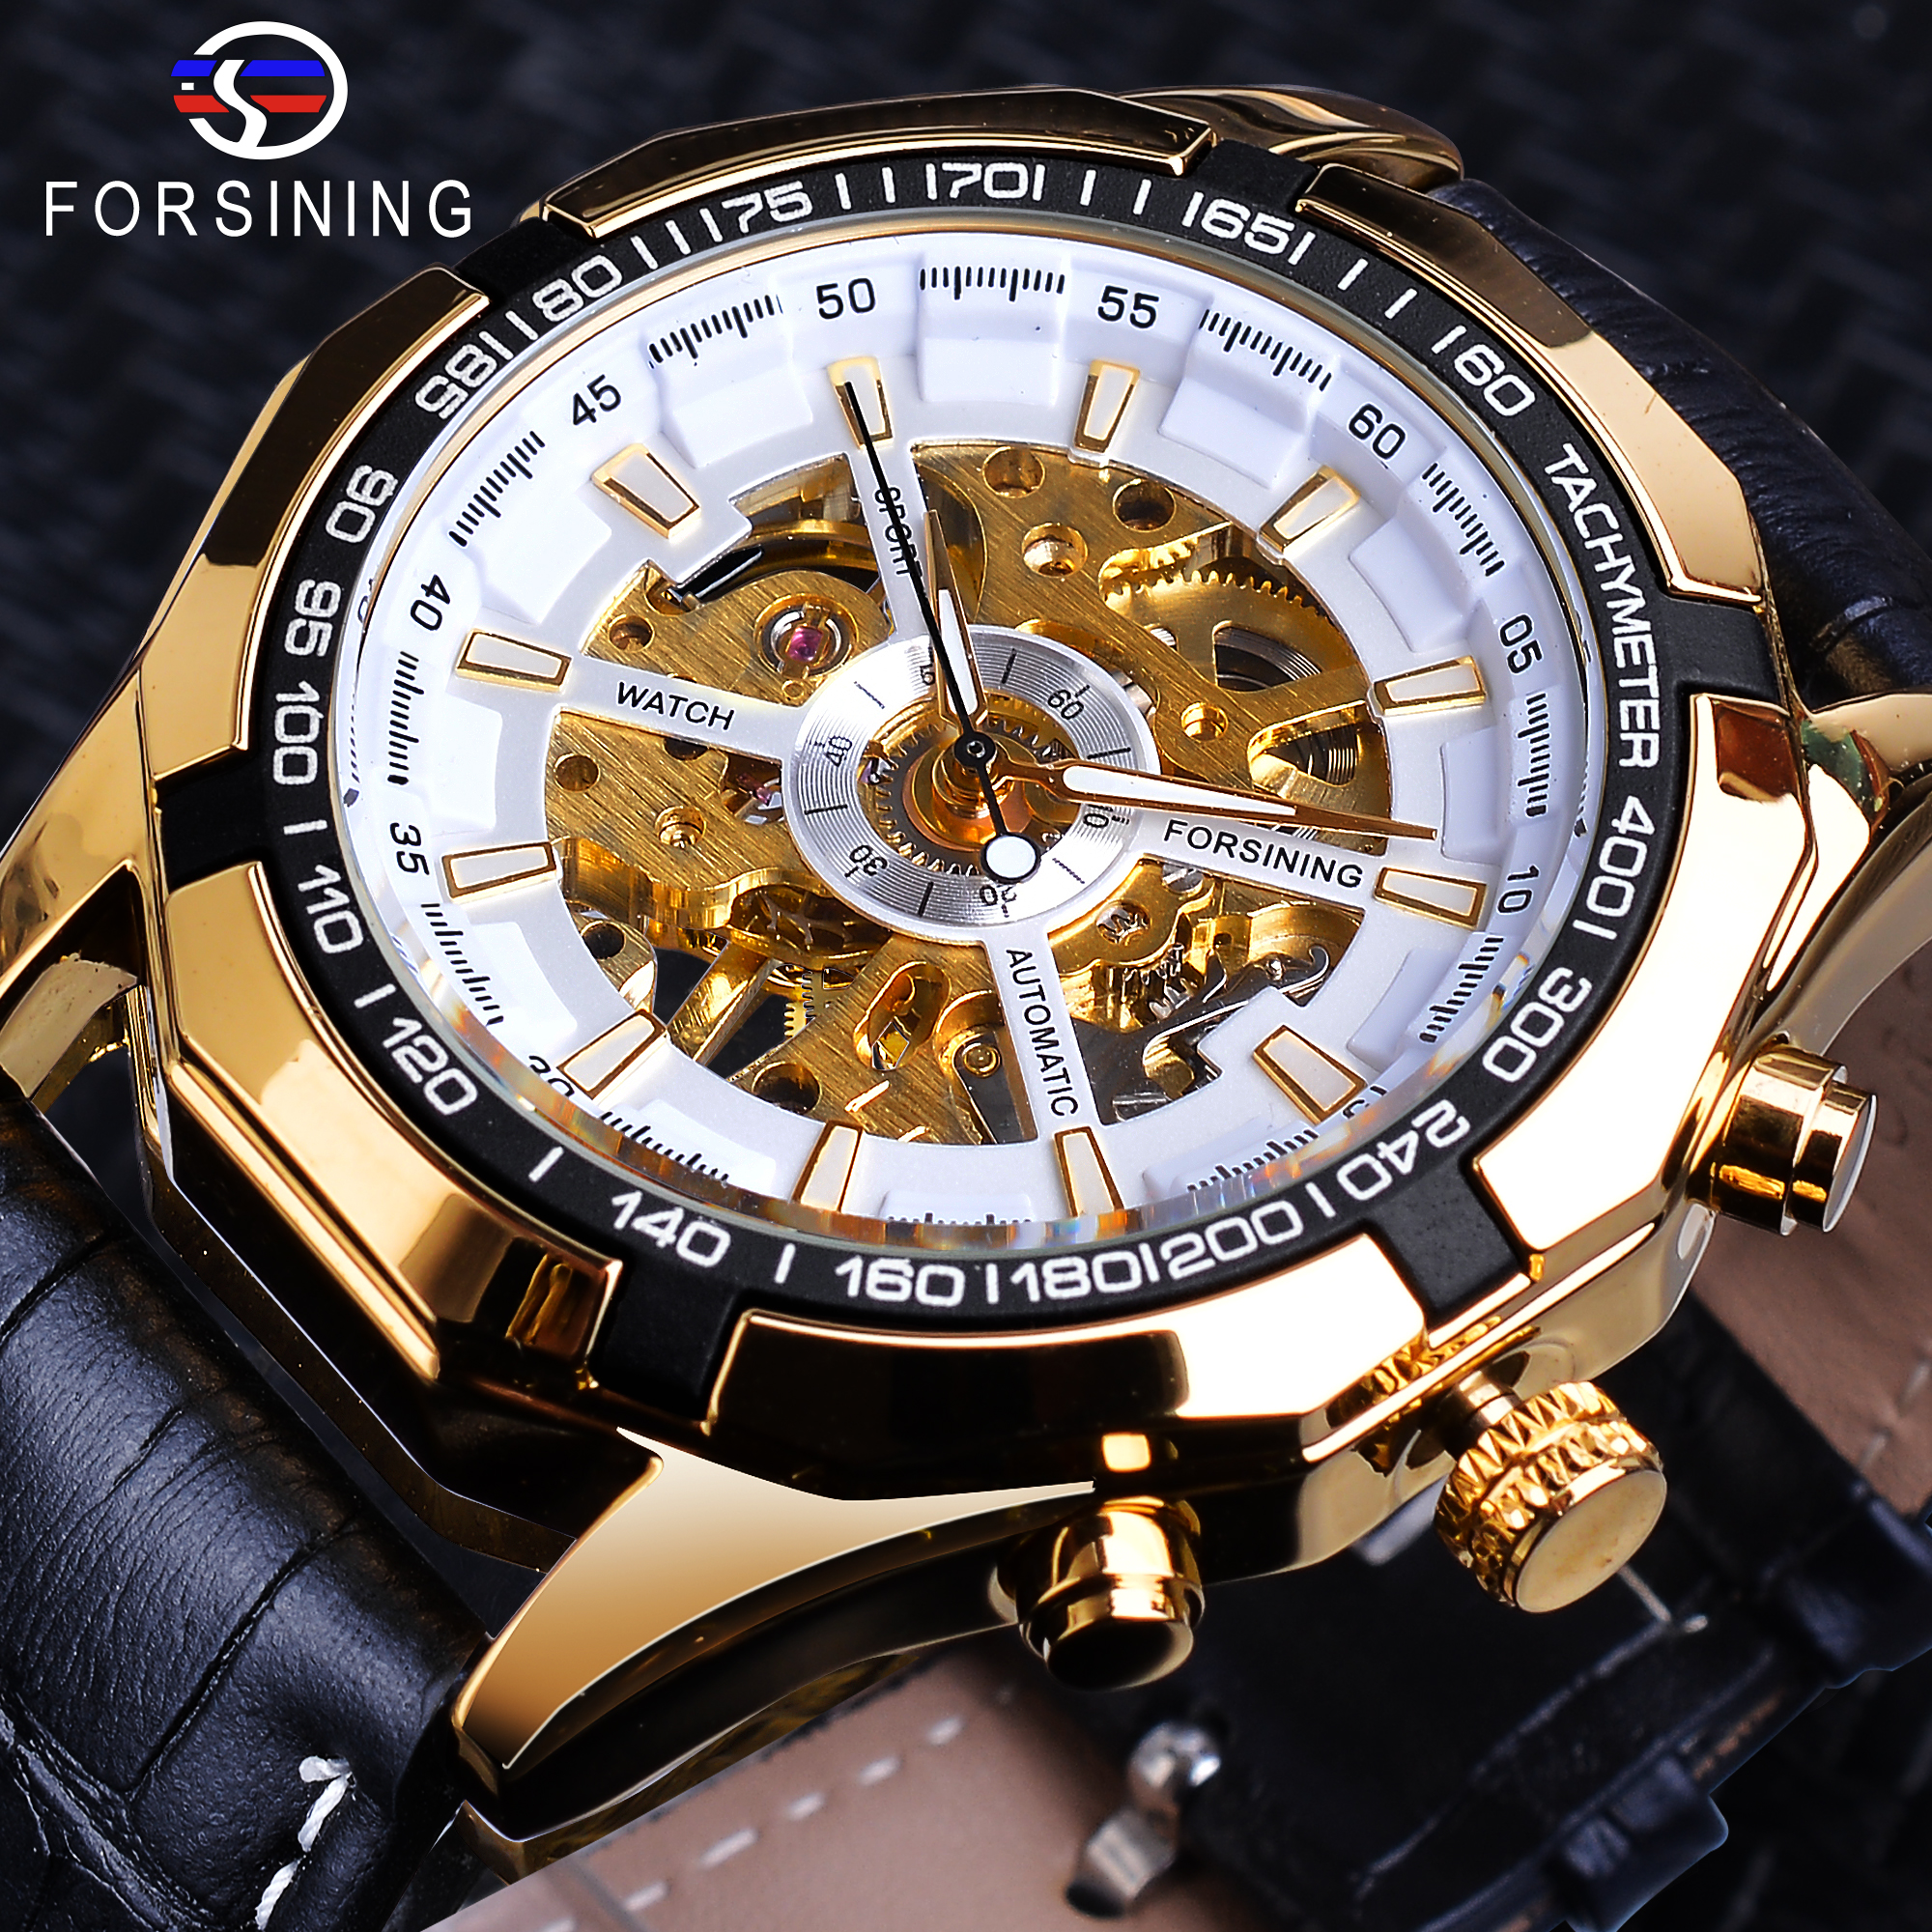 Forsining Luxury Automatic Mens Mechanical Watch Skeleton Black Golden Retro Luminous Hands Leather Band Top Brand Male WatchesForsining Luxury Automatic Mens Mechanical Watch Skeleton Black Golden Retro Luminous Hands Leather Band Top Brand Male Watches